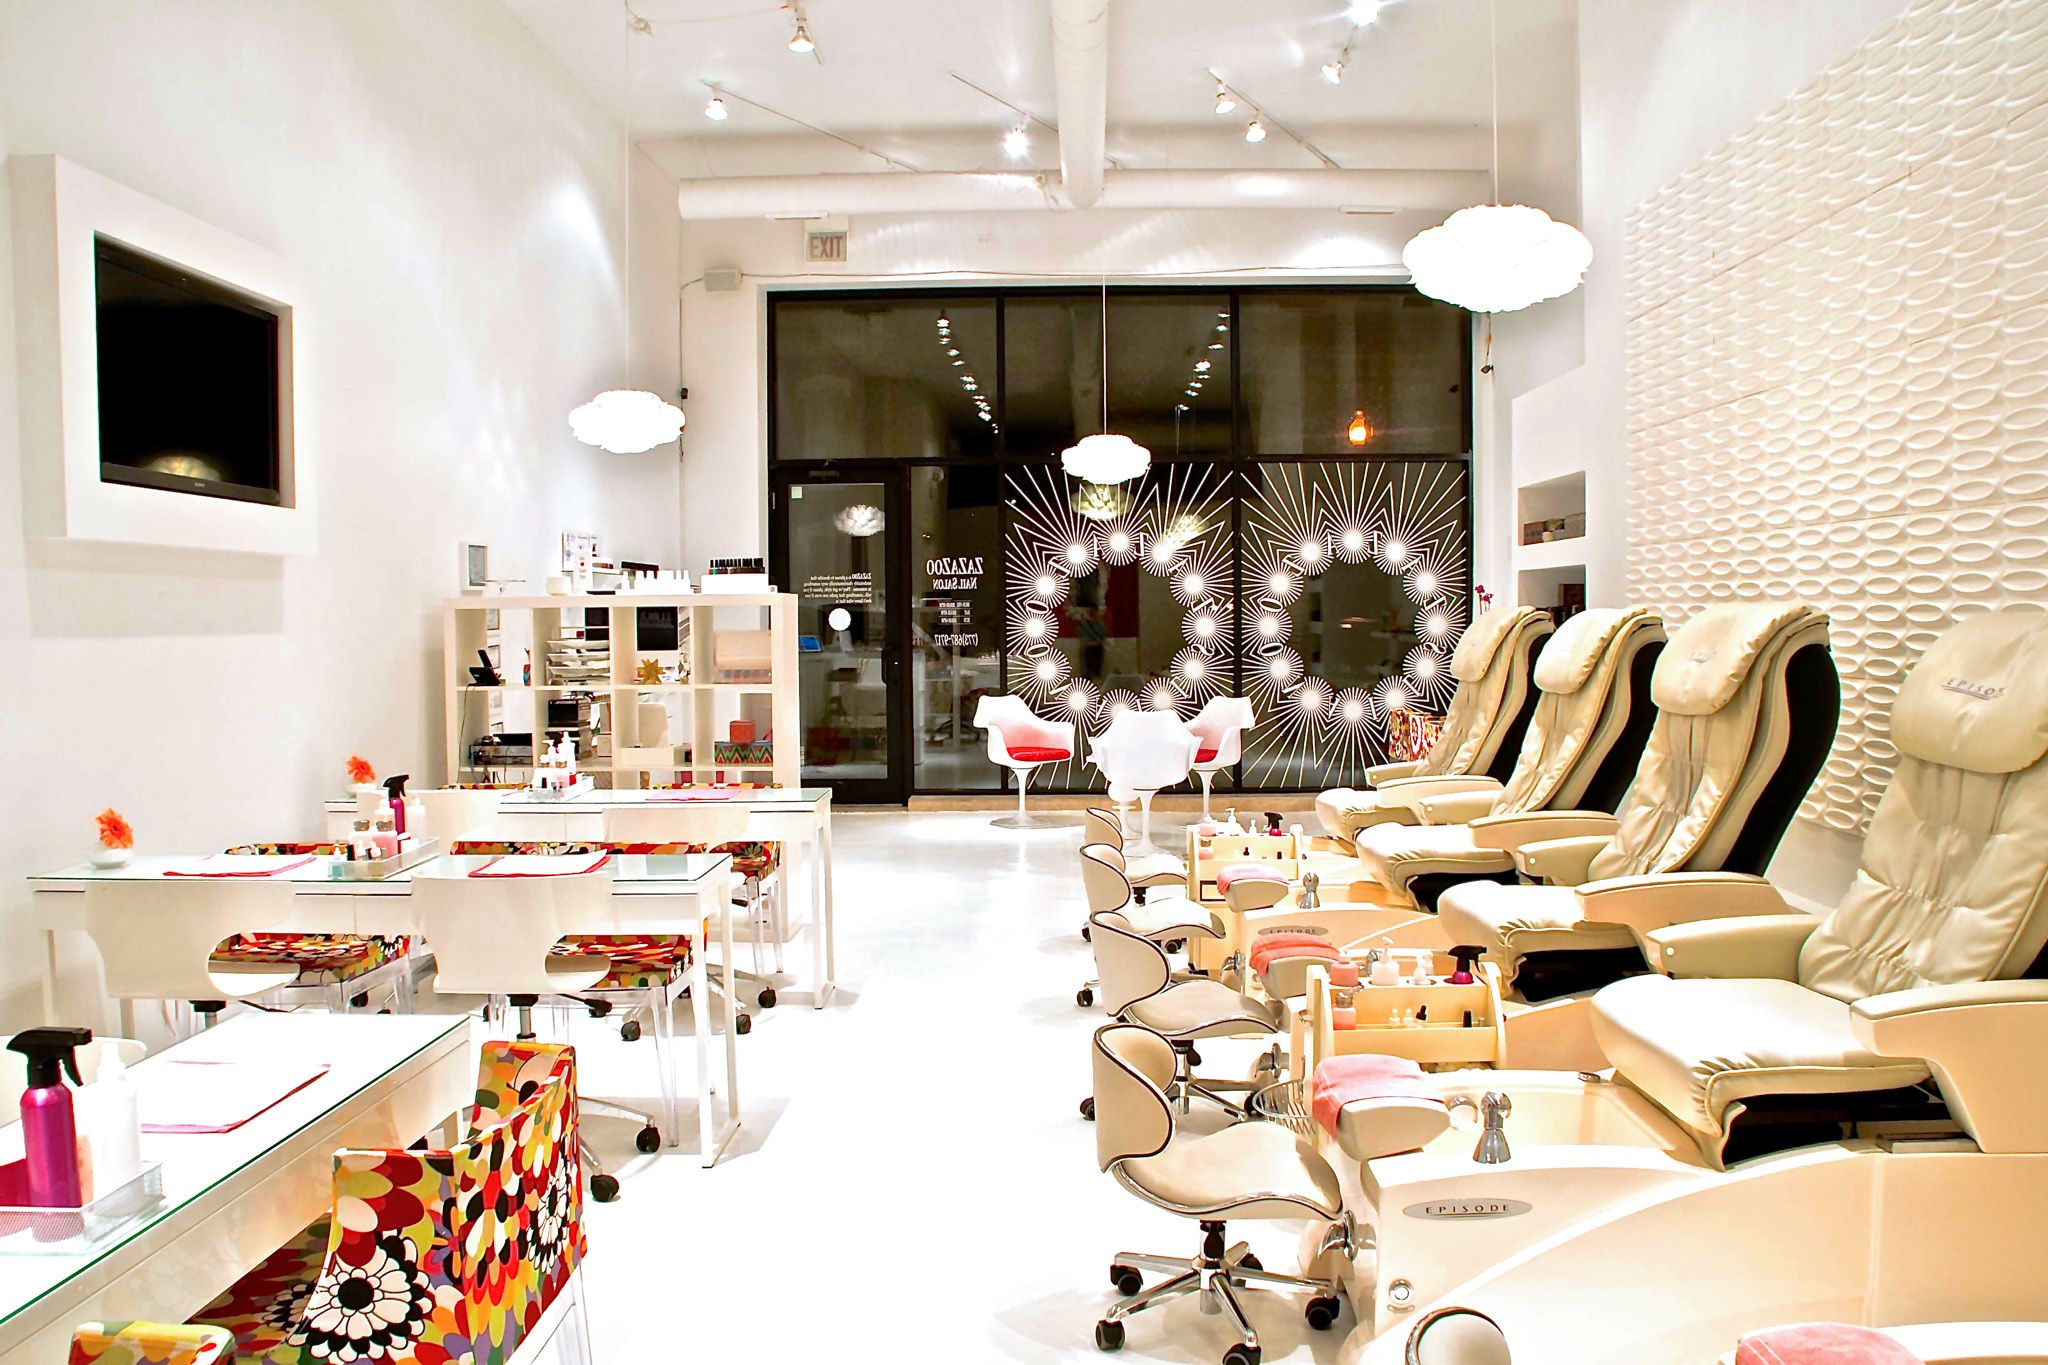 The Best Nail Salons In Chicago With Images Salon Interior Design Nail Salon Interior Design Nail Salon Interior